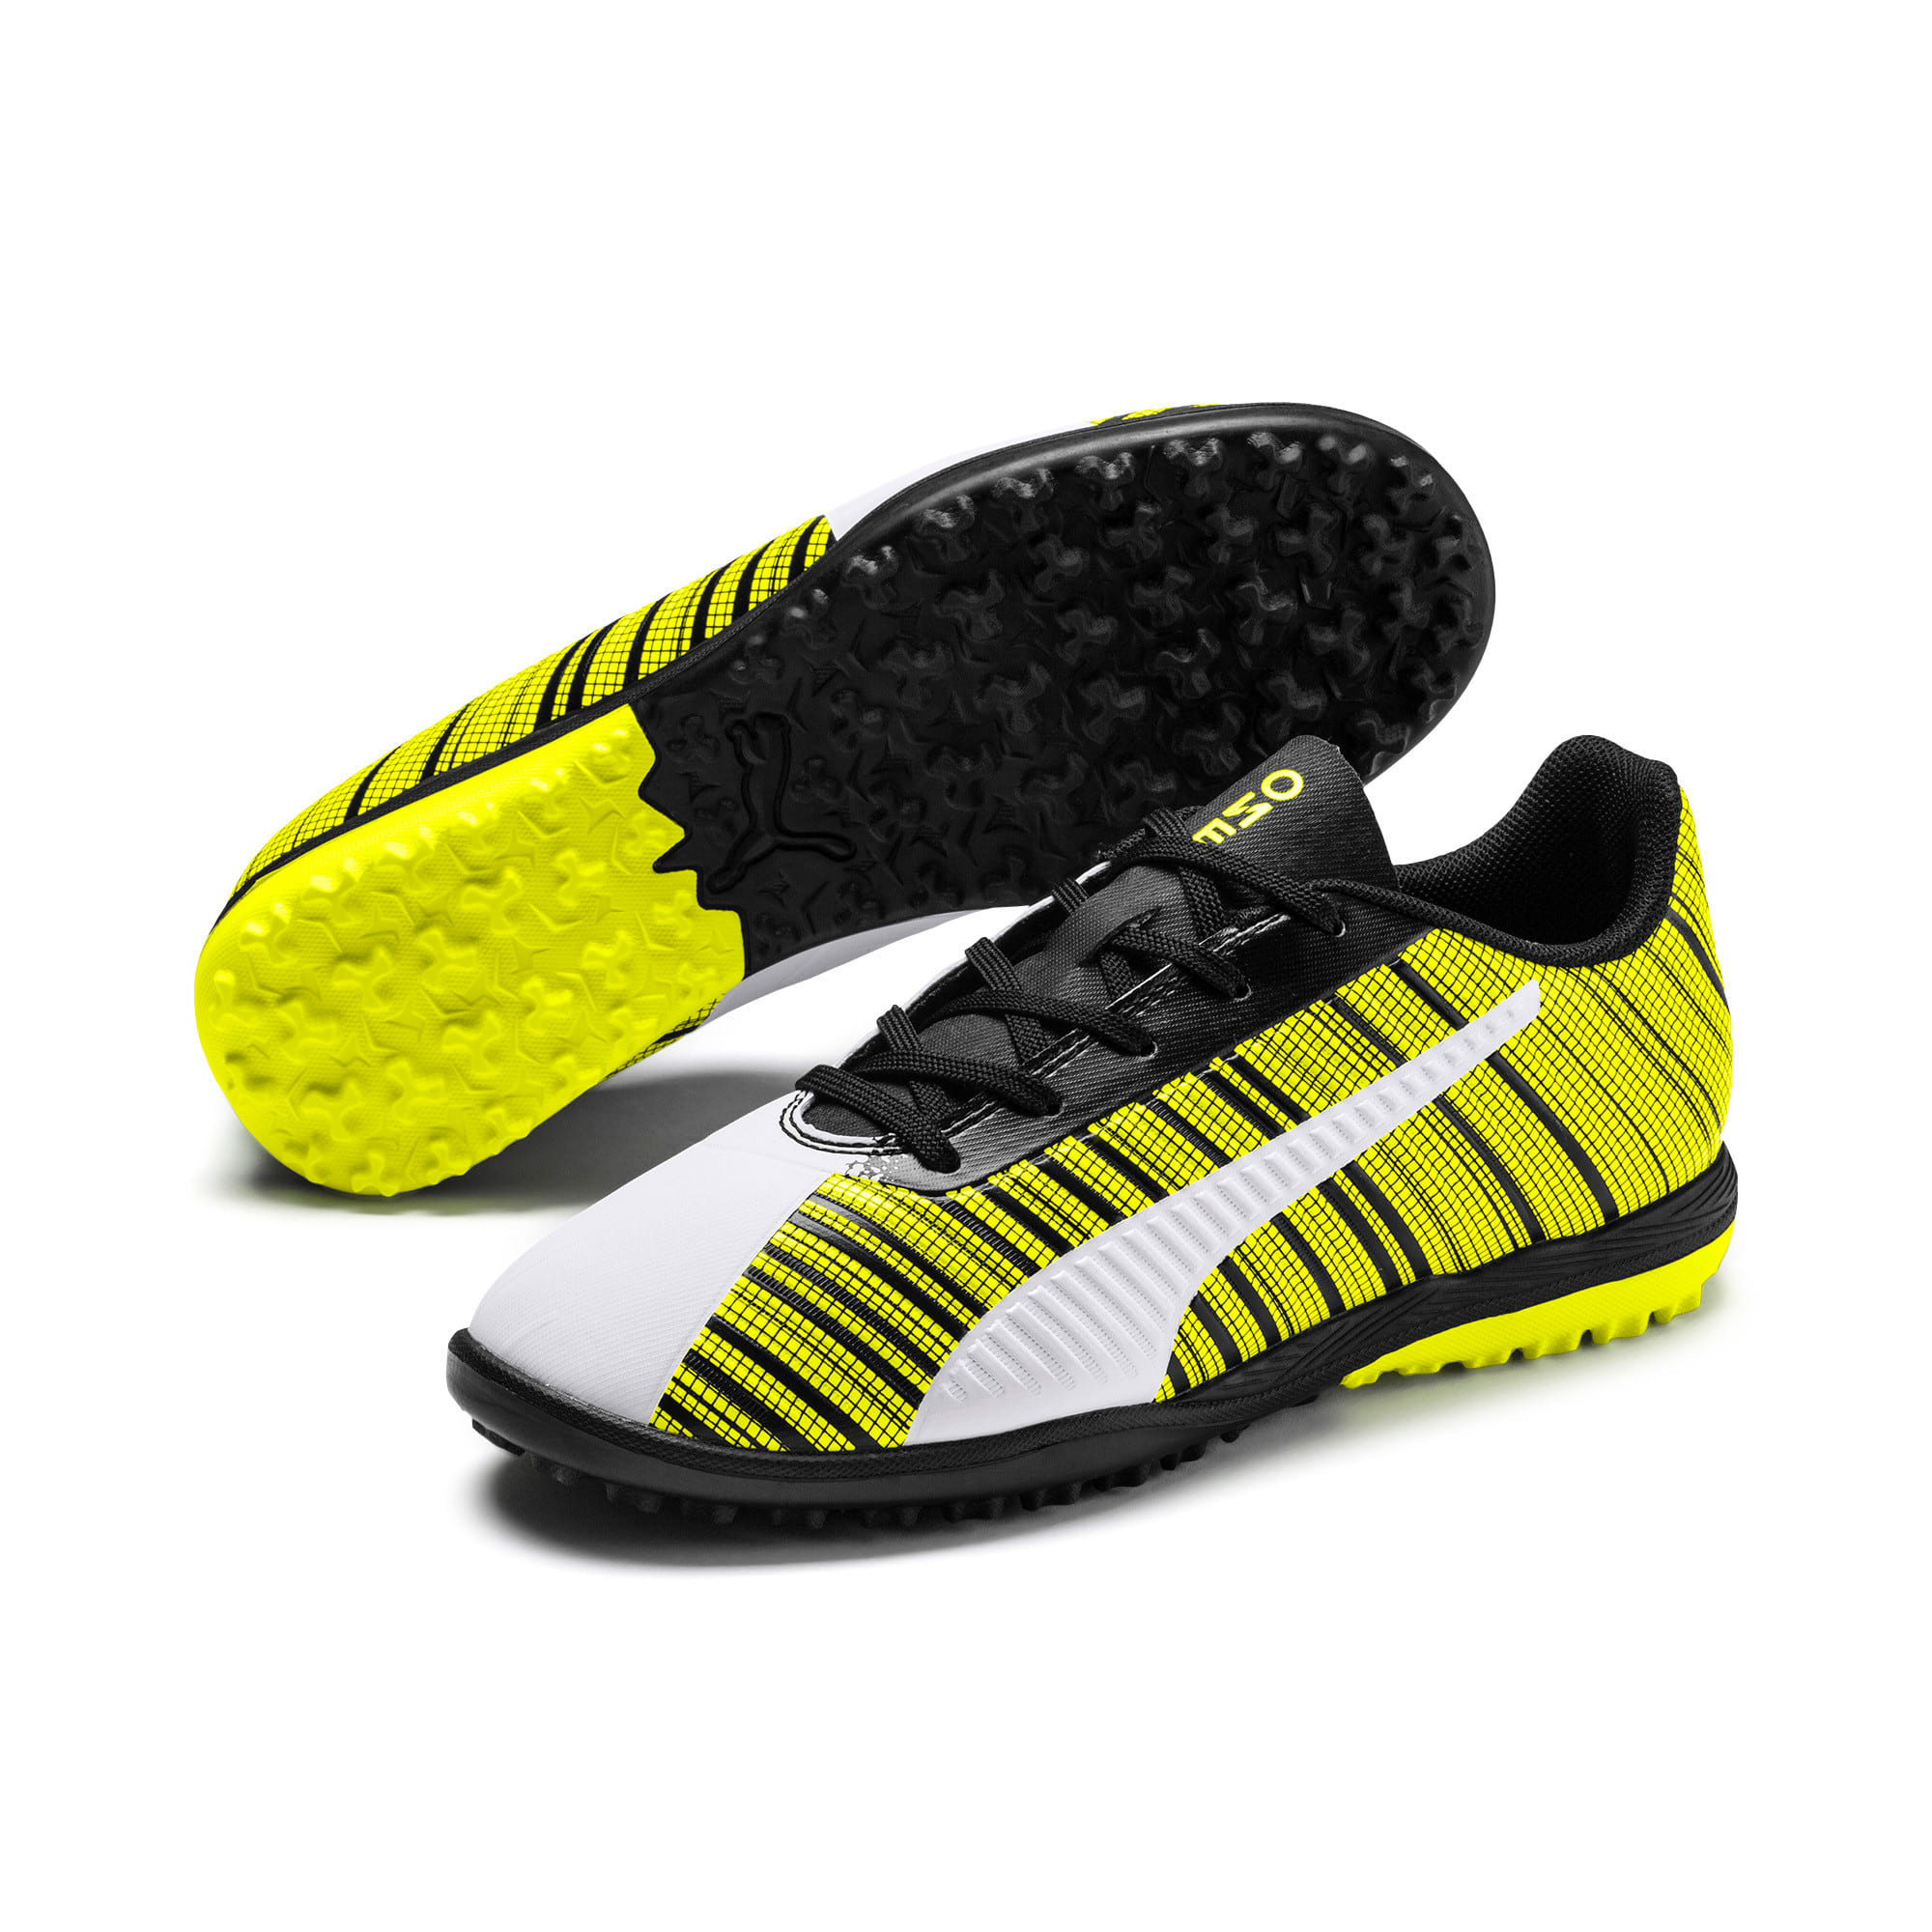 Thumbnail 2 of PUMA ONE 5.4 TT Youth Football Boots, White-Black-Yellow Alert, medium